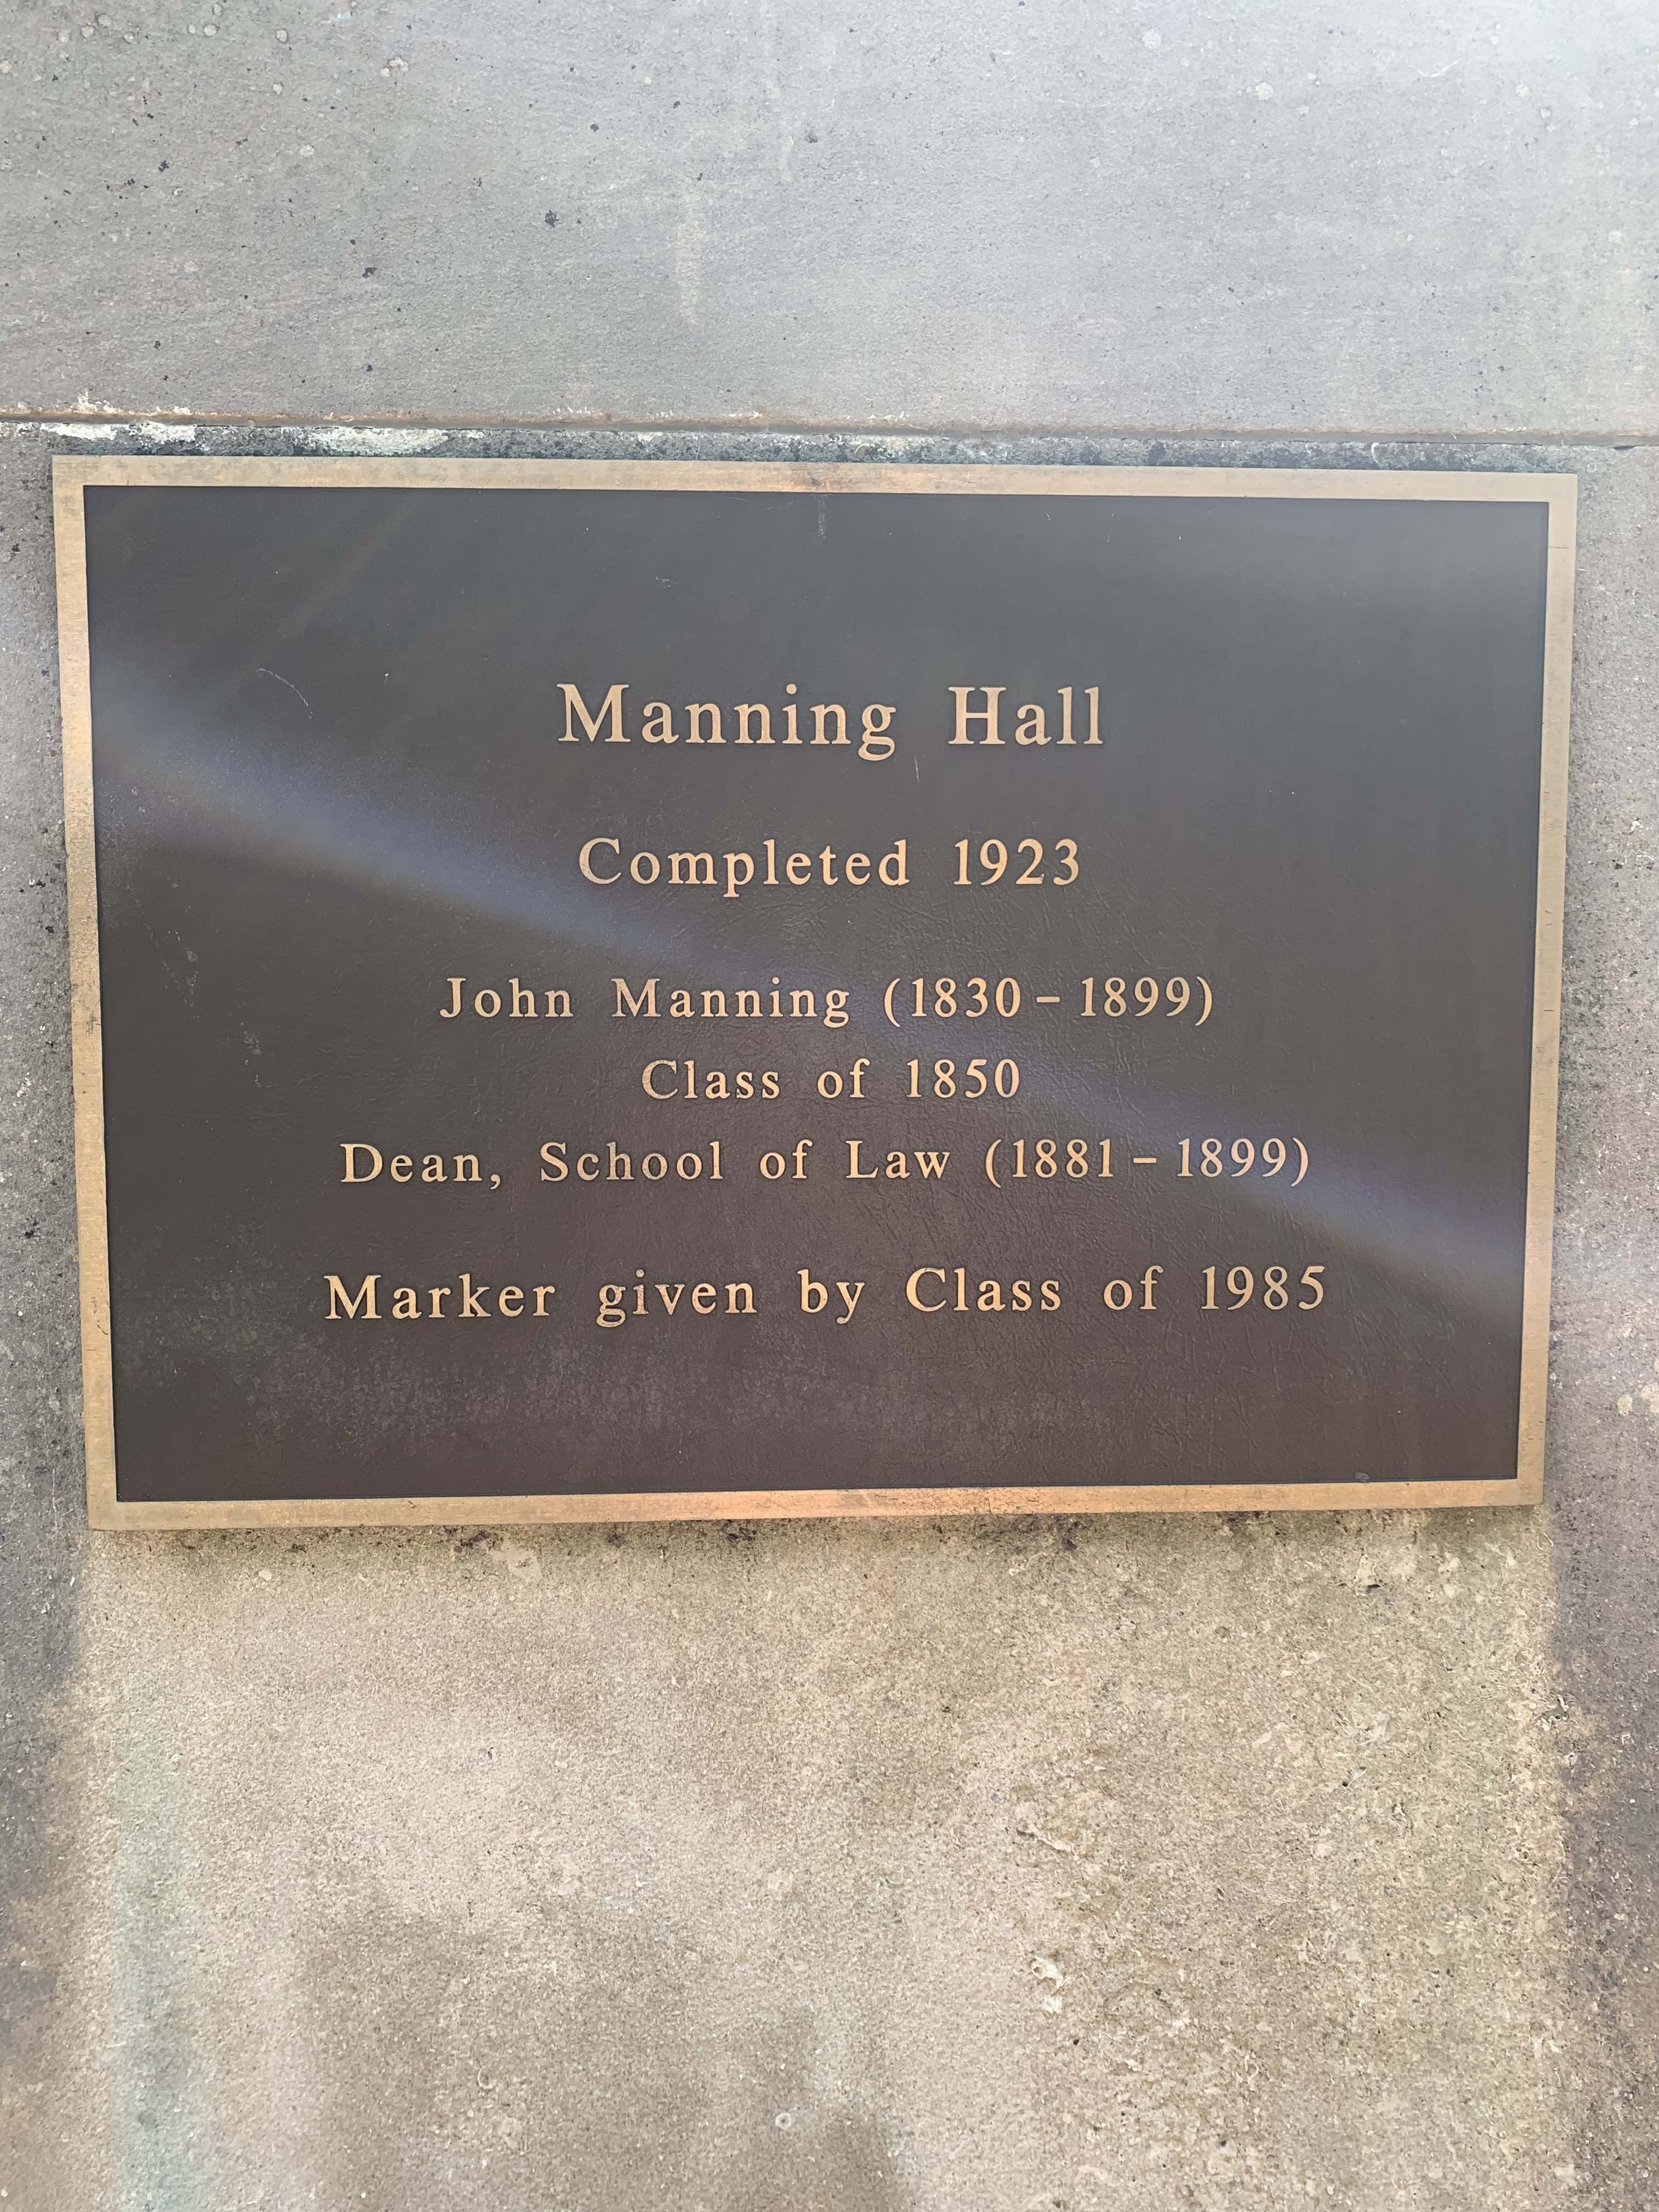 This plaque on the front steps commemorates the completion of Manning Hall in 1923. Manning Hall was originally the home of UNC's School of Law. The building was named after John Manning, a professor and dean at the Law School.